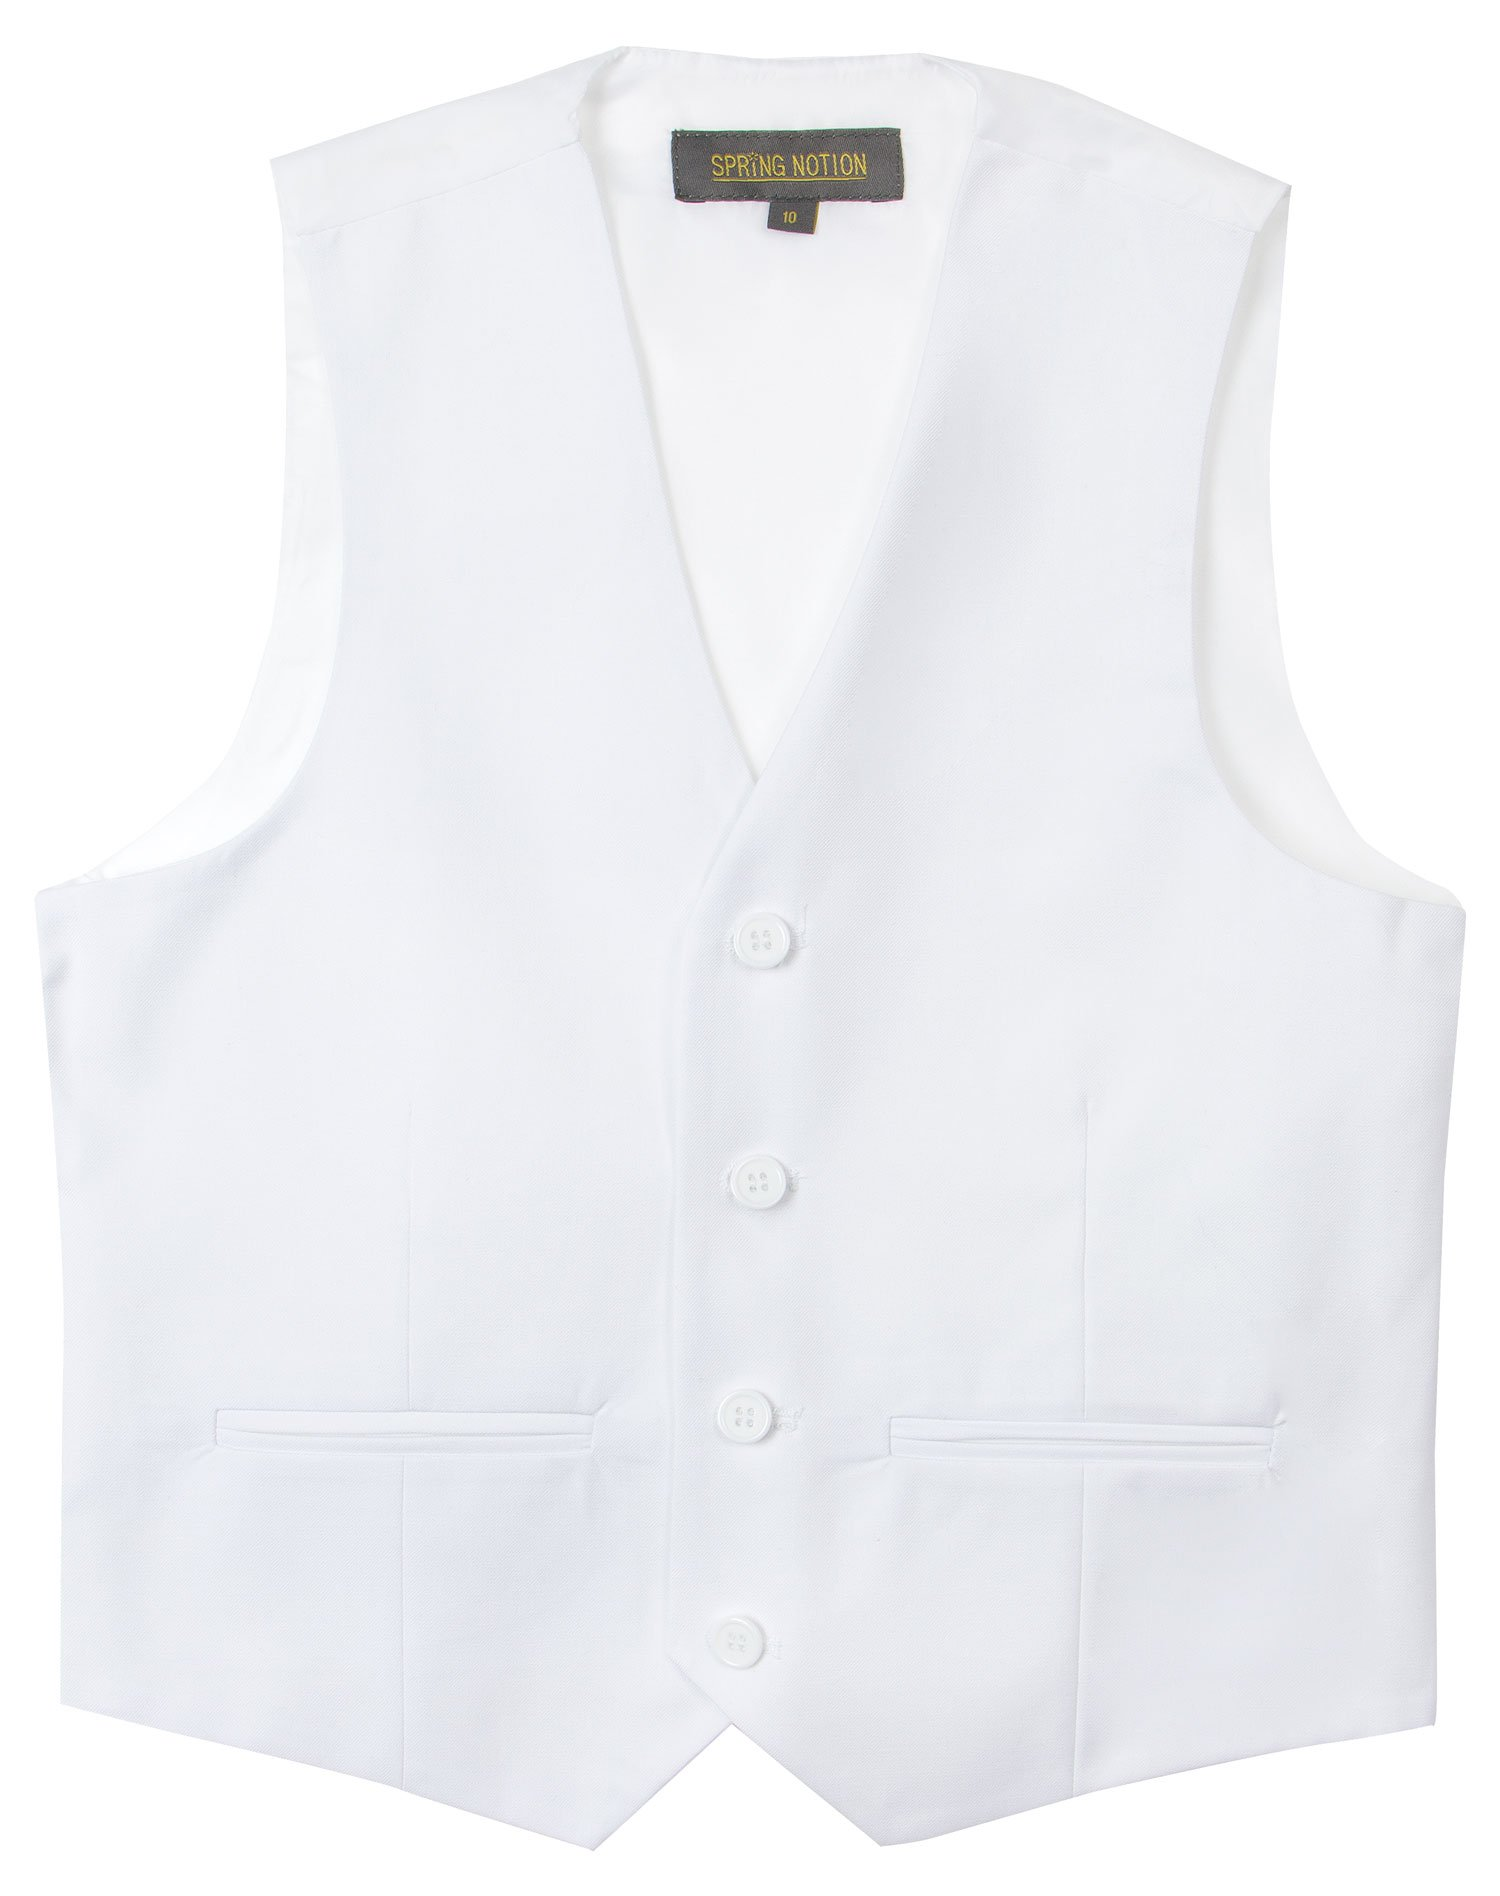 Spring Notion Big Boys' Two Button Suit 10 White Vest